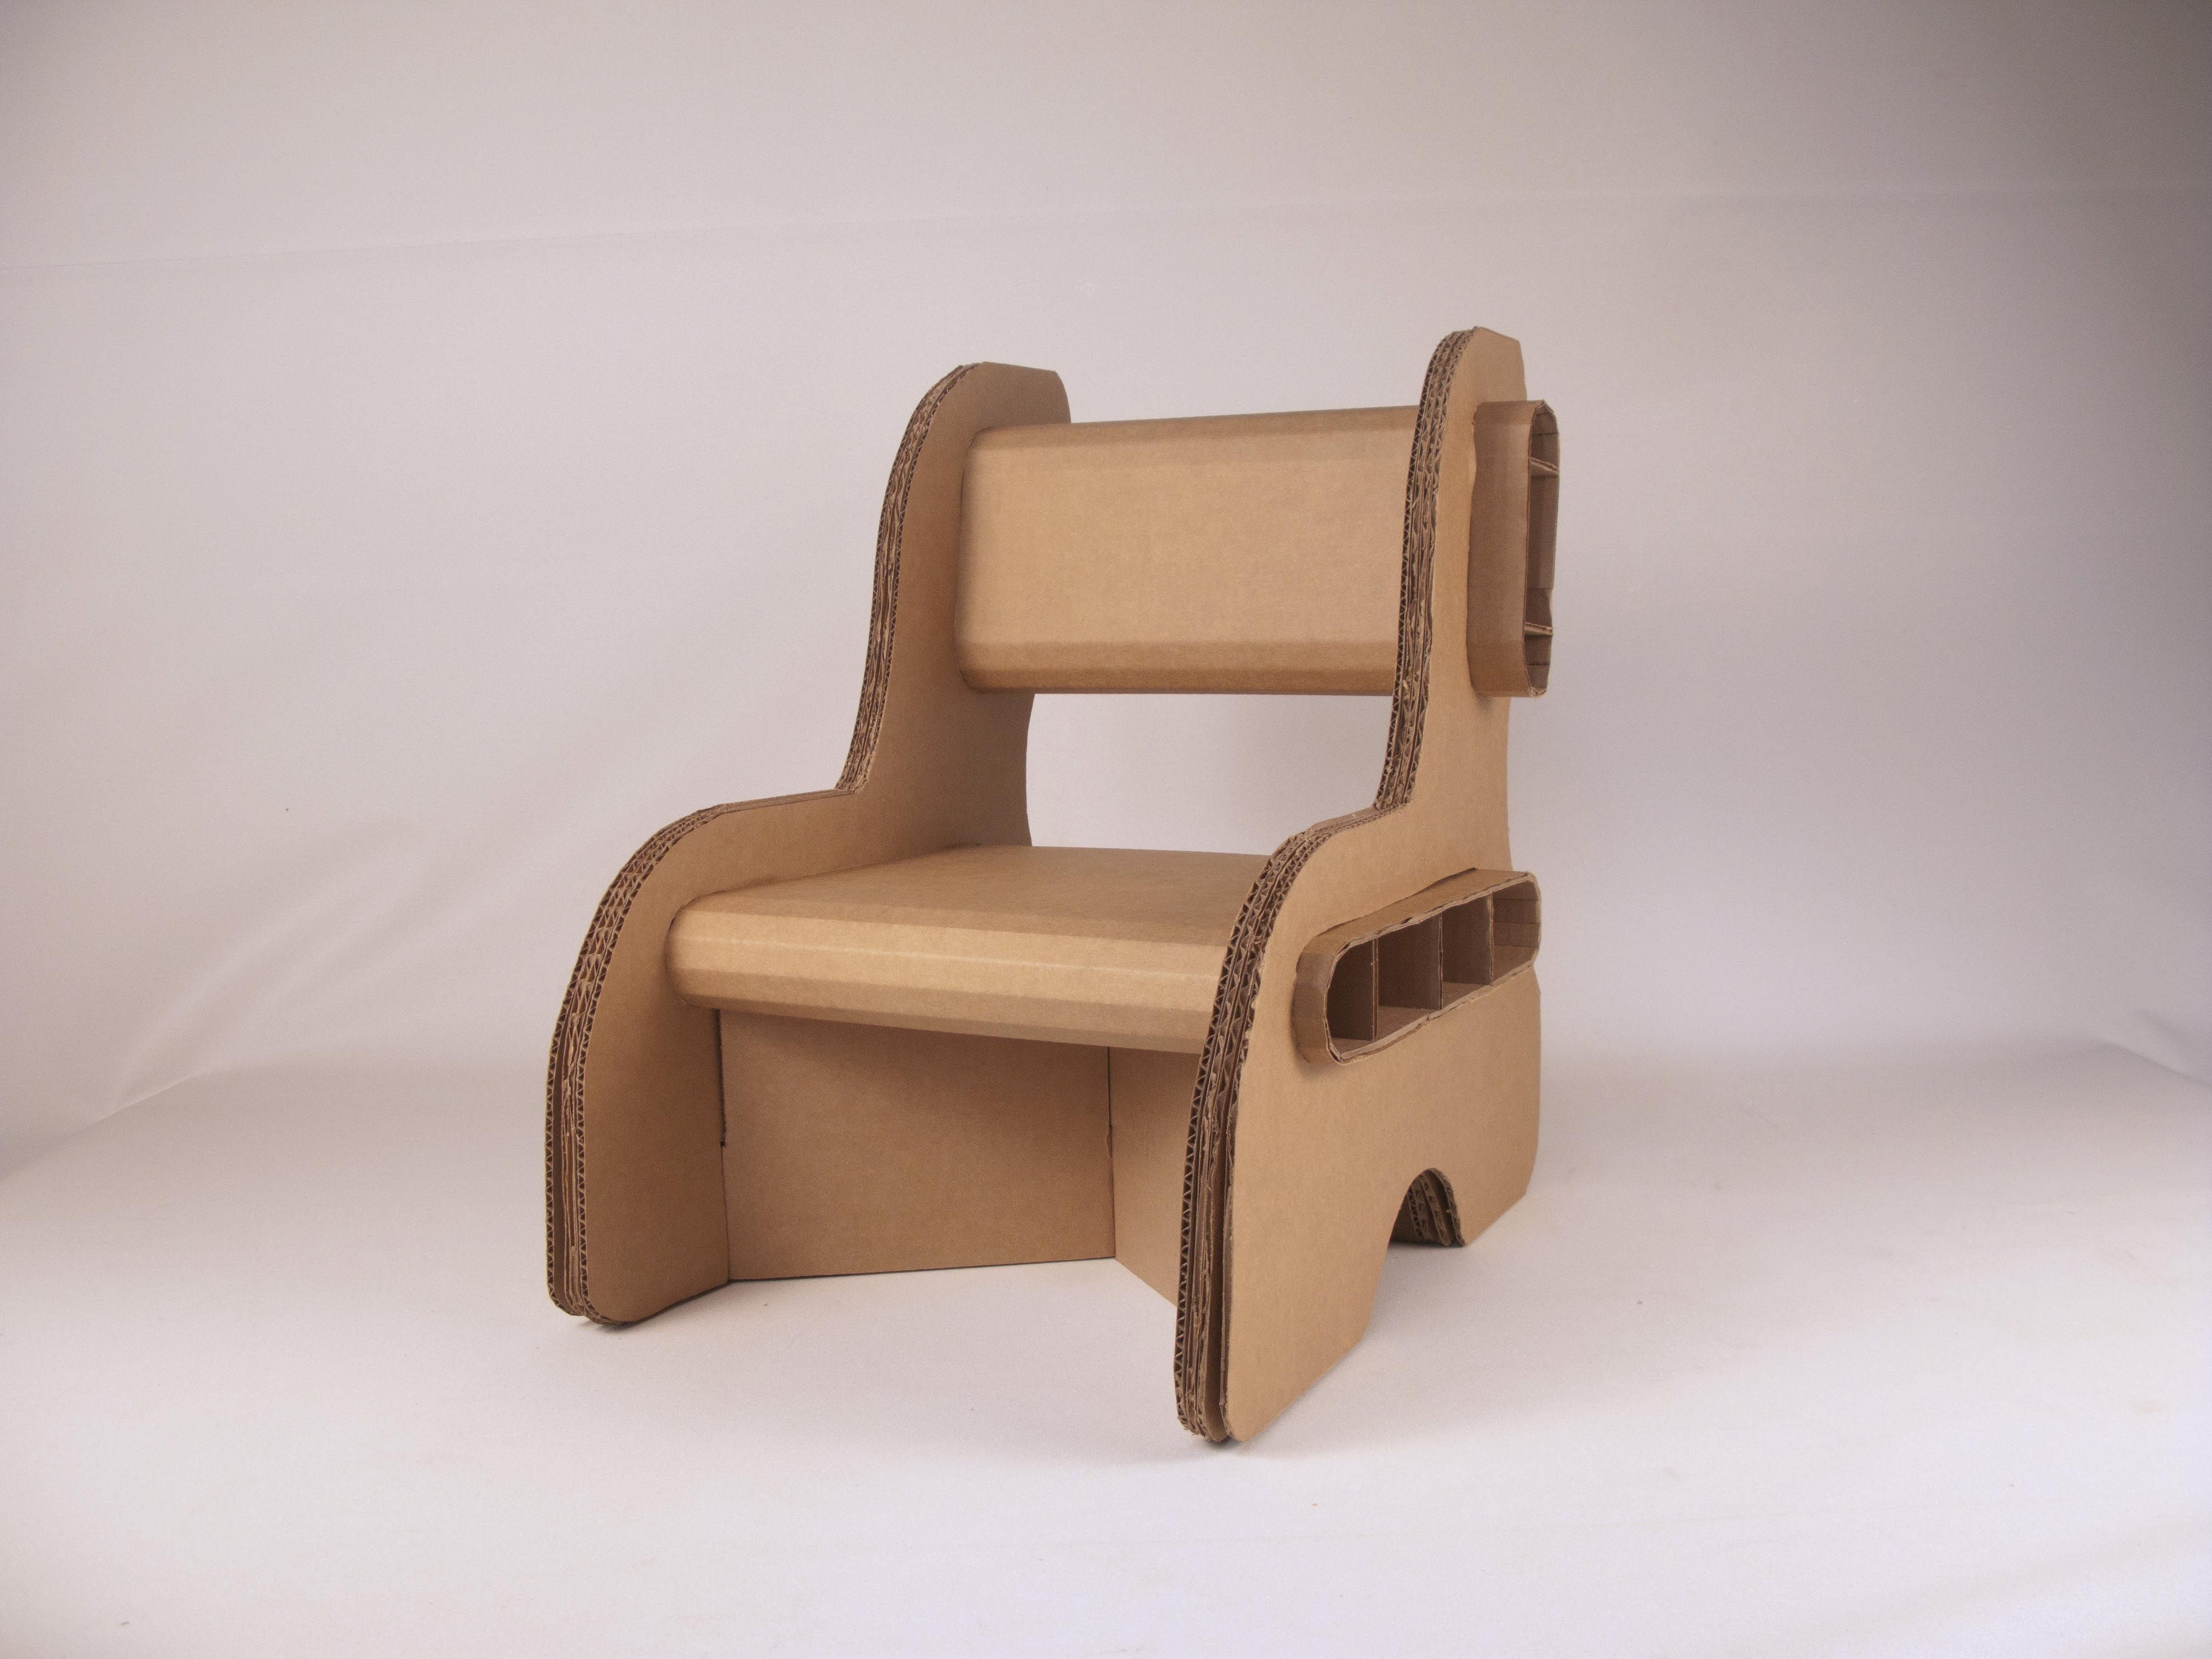 Chair Design Model High Cushion For Wooden Chairs Cardboard Template Google Search Cool Designs